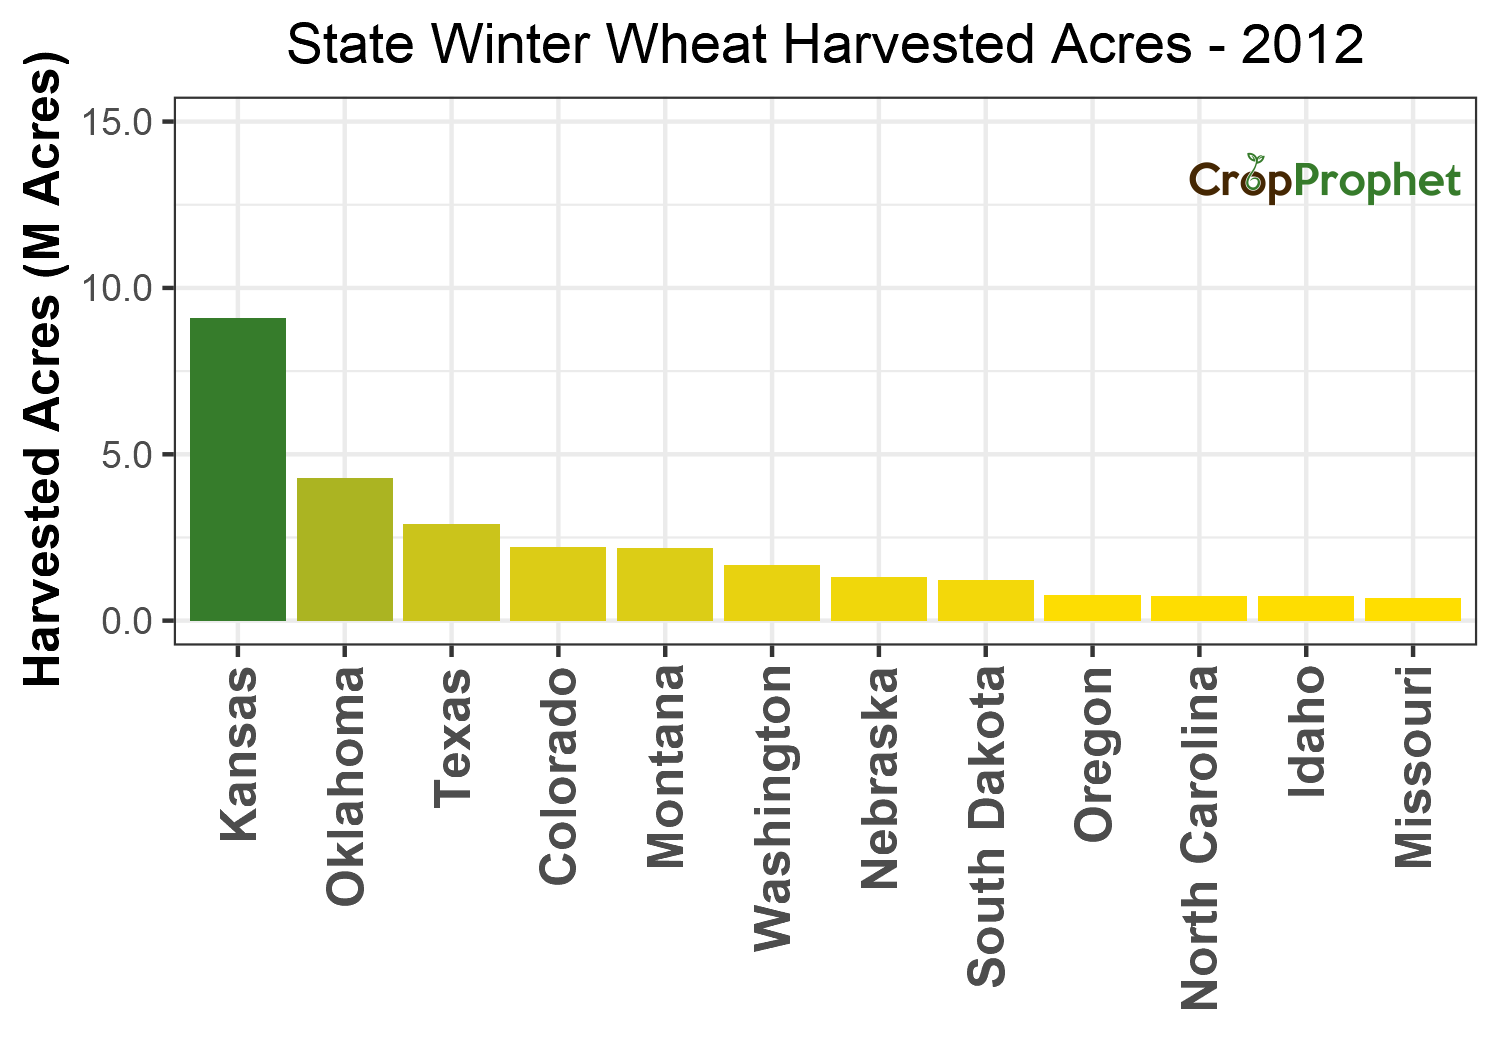 Winter wheat Harvested Acres by State - 2012 Rankings